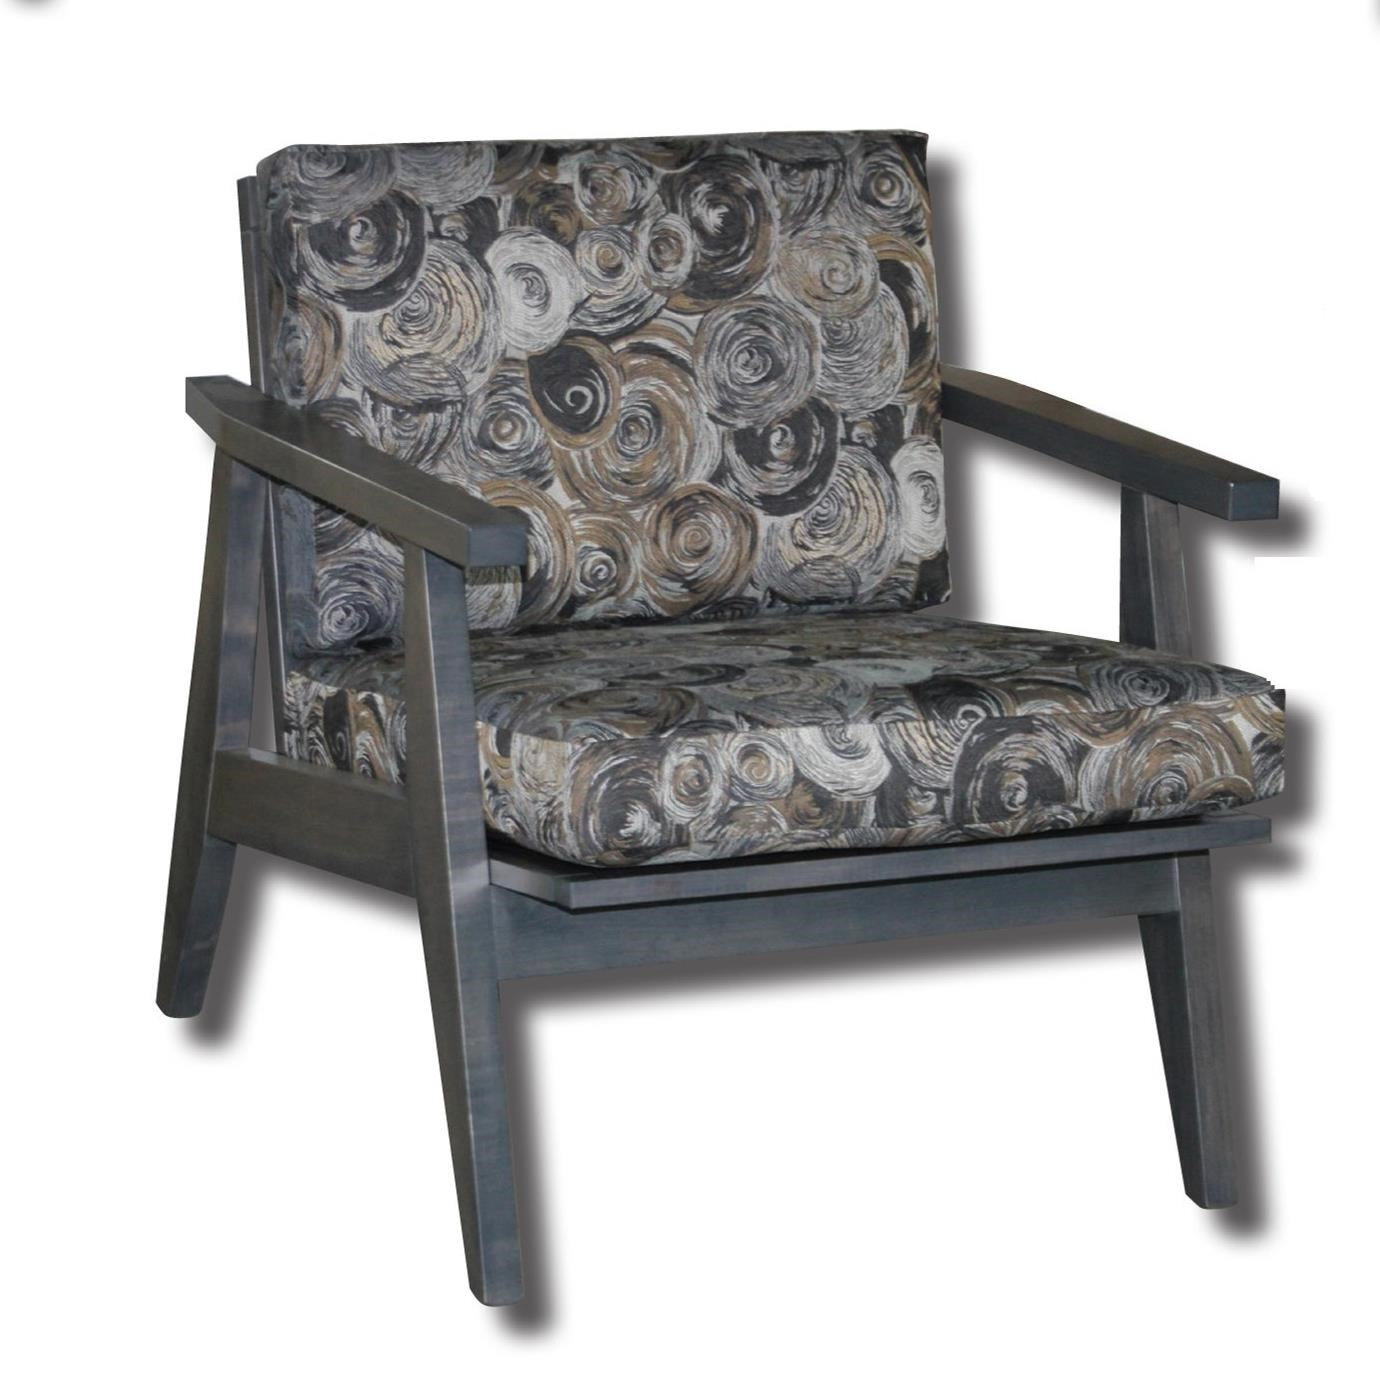 Century Style Customizable Solid Wood Exposed Wood Chair by Ashery Woodworking at Saugerties Furniture Mart